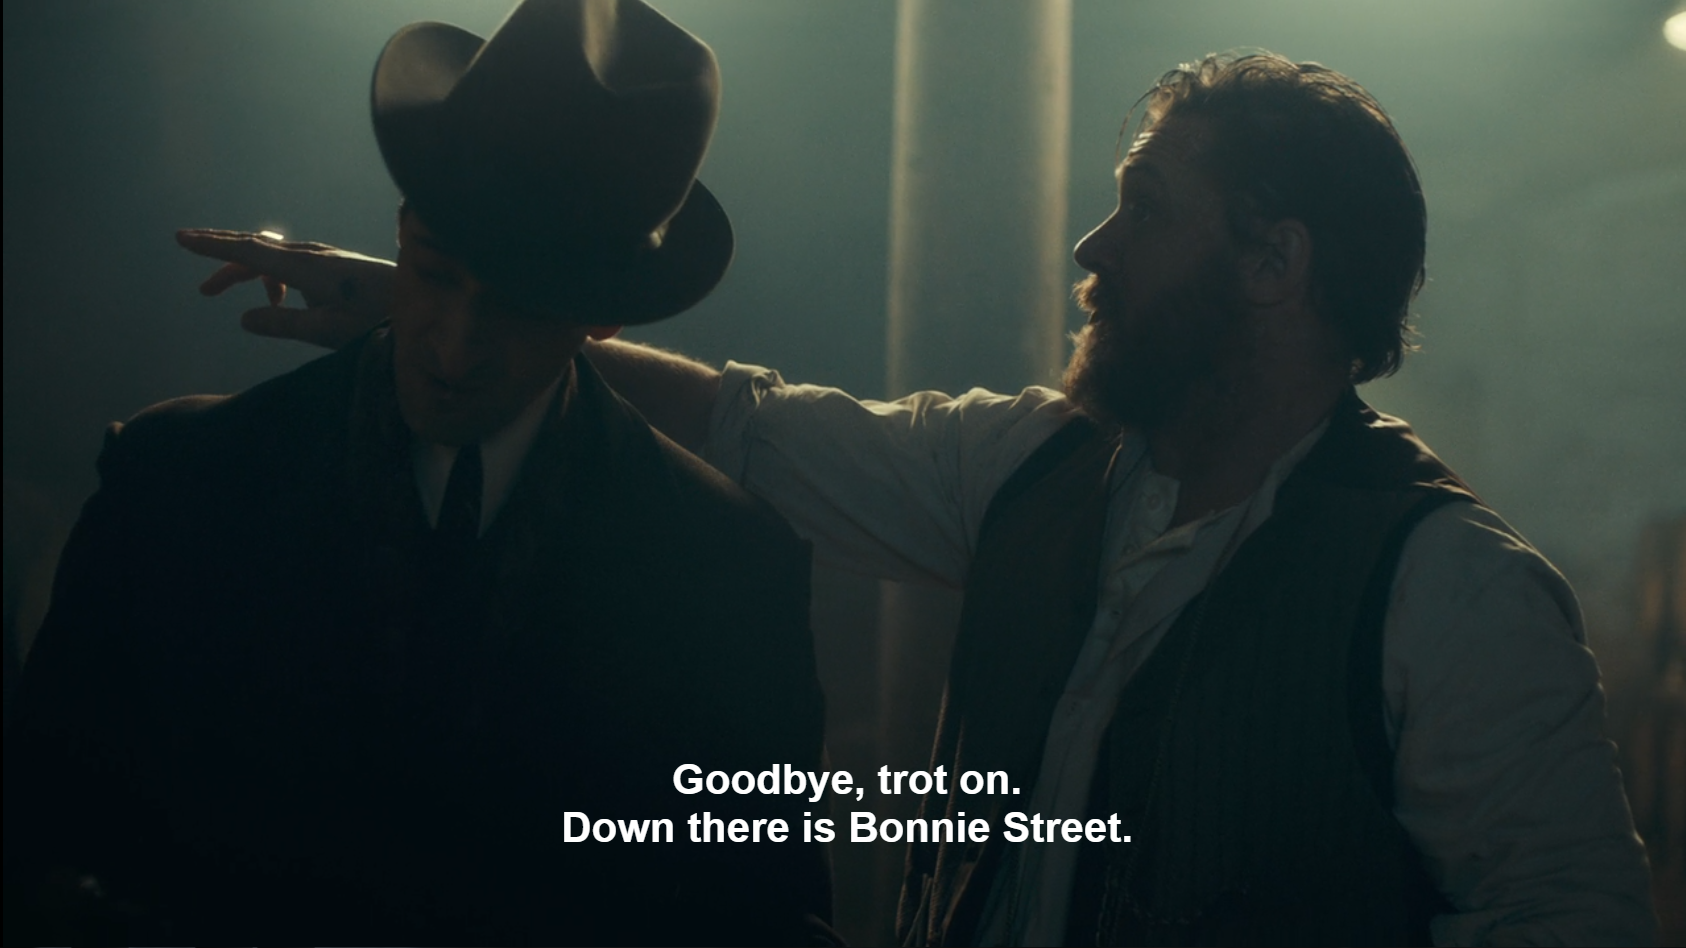 Screenshot of Alfie Solomons and Luca Changretta characters in Peaky Blinders show. The erroneous caption for Alfie says, Goodbye, trot on. Down there is Bonnie Street.